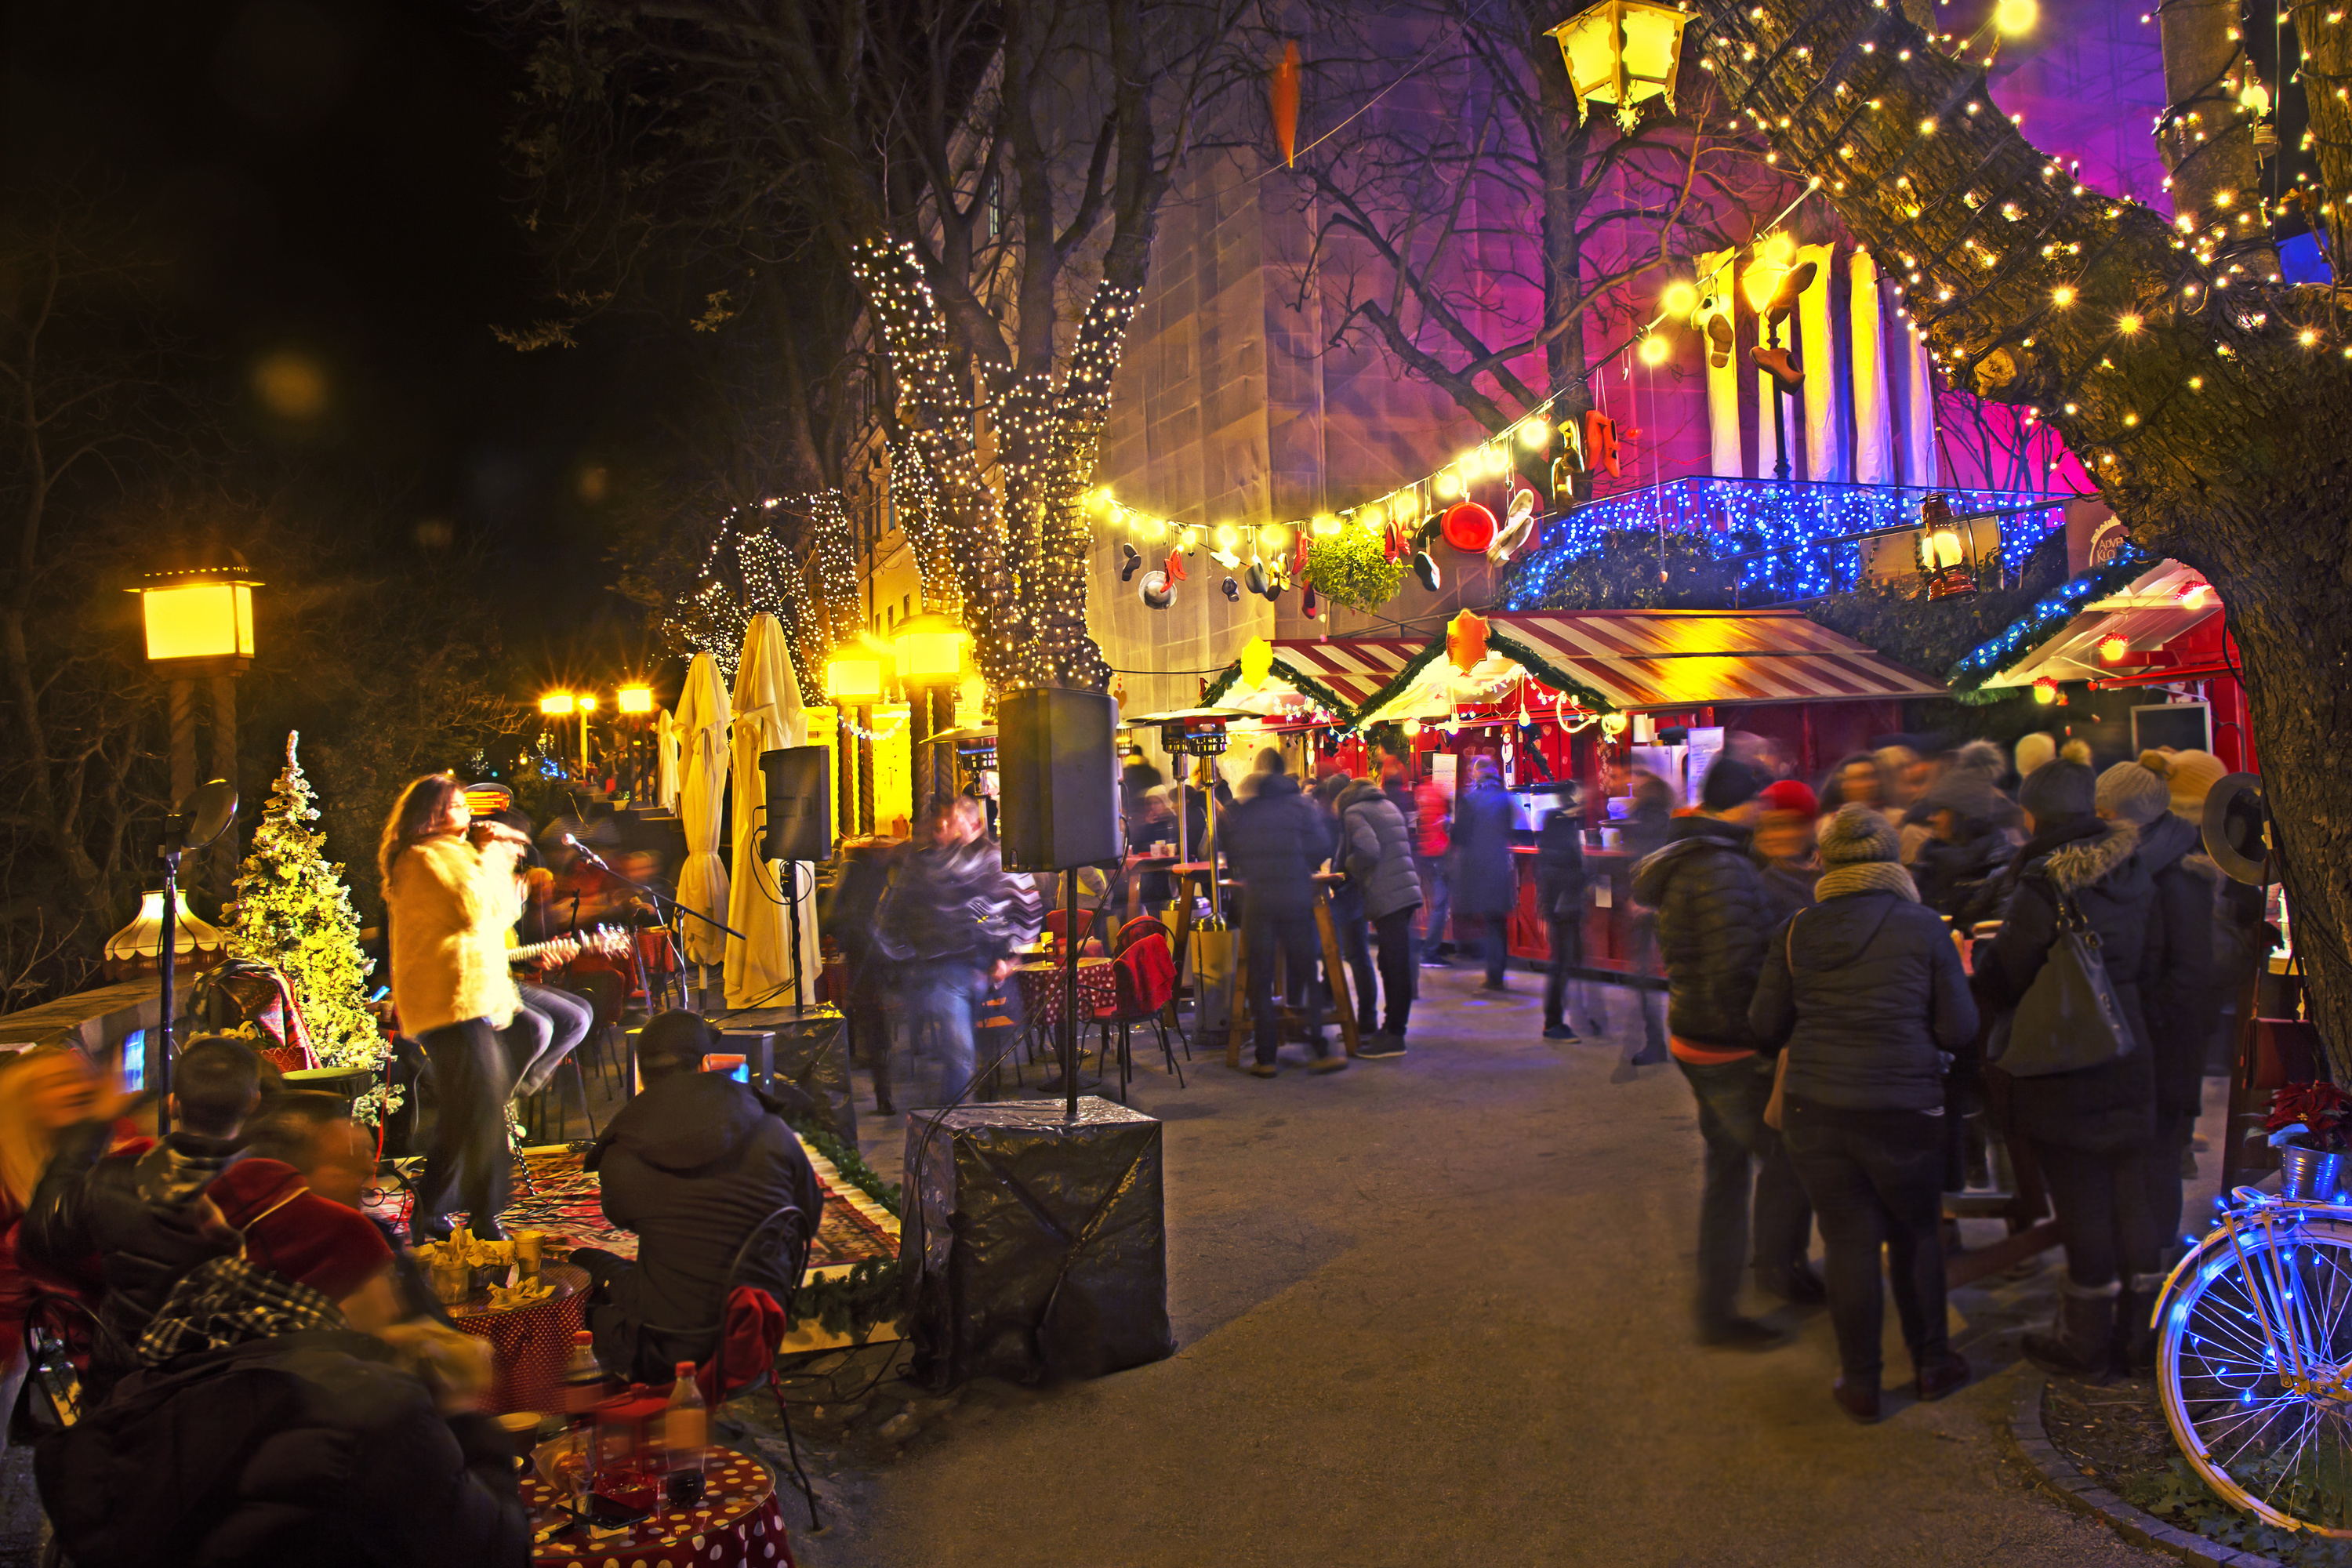 10 of the most charming Christmas markets in Europe